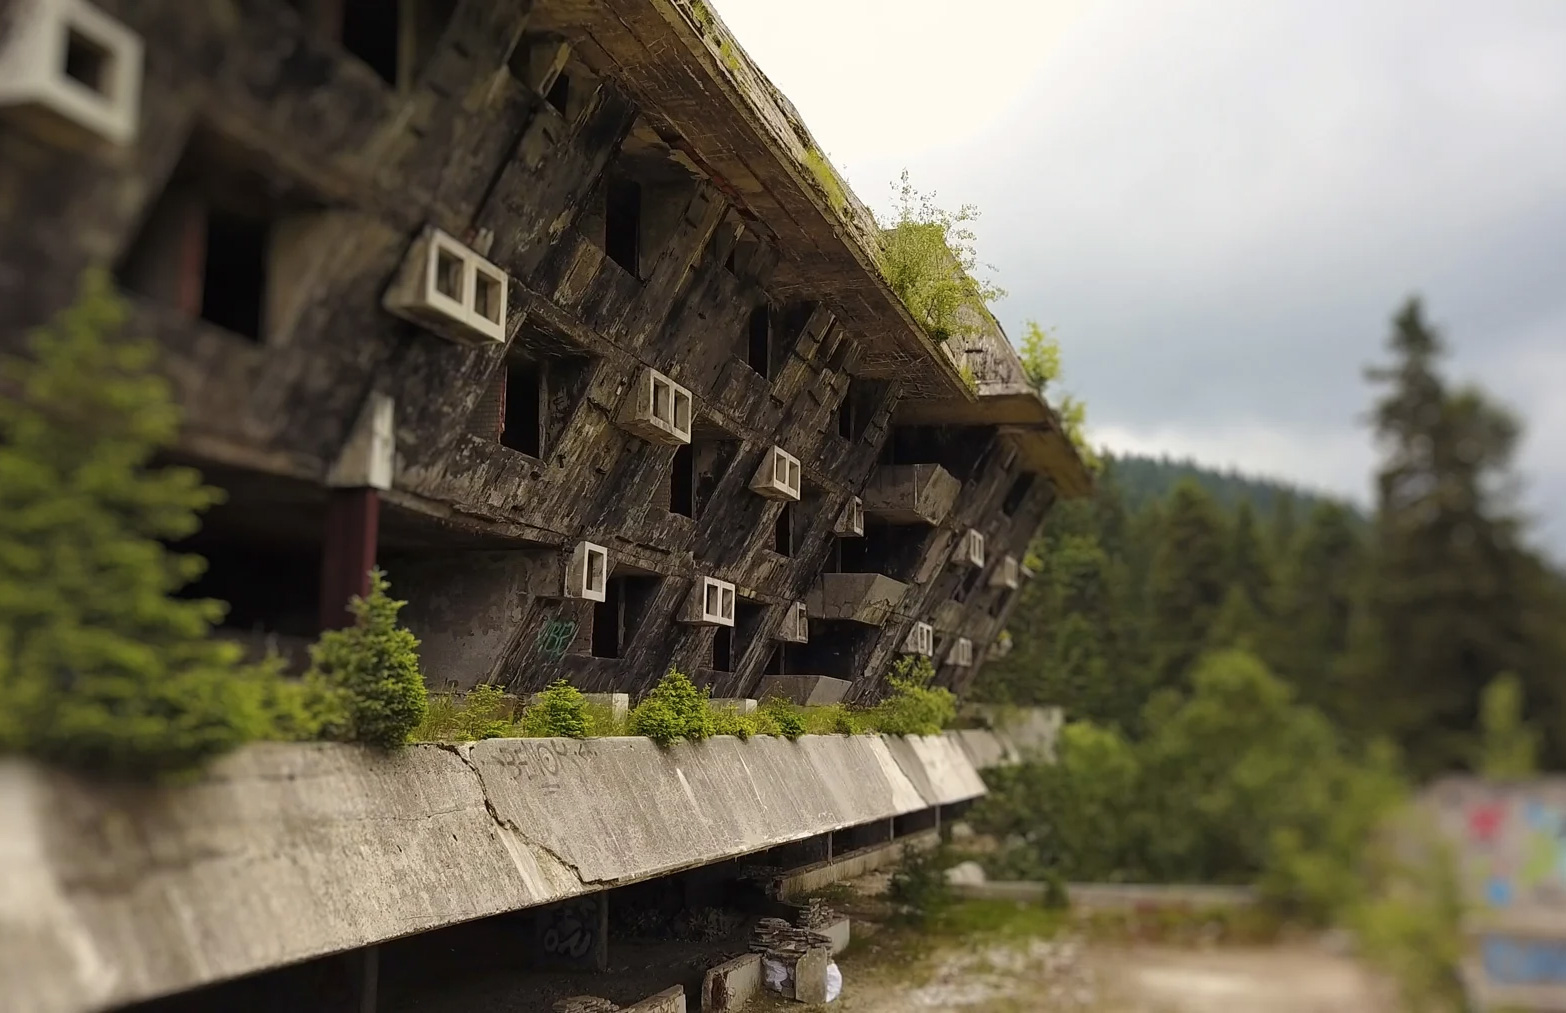 Sarajevo's abandoned ski-lifts, bobsleigh runs and crumbling Olympic village are captured by Berlin-based filmmaker Joerg Daiber in this short film.